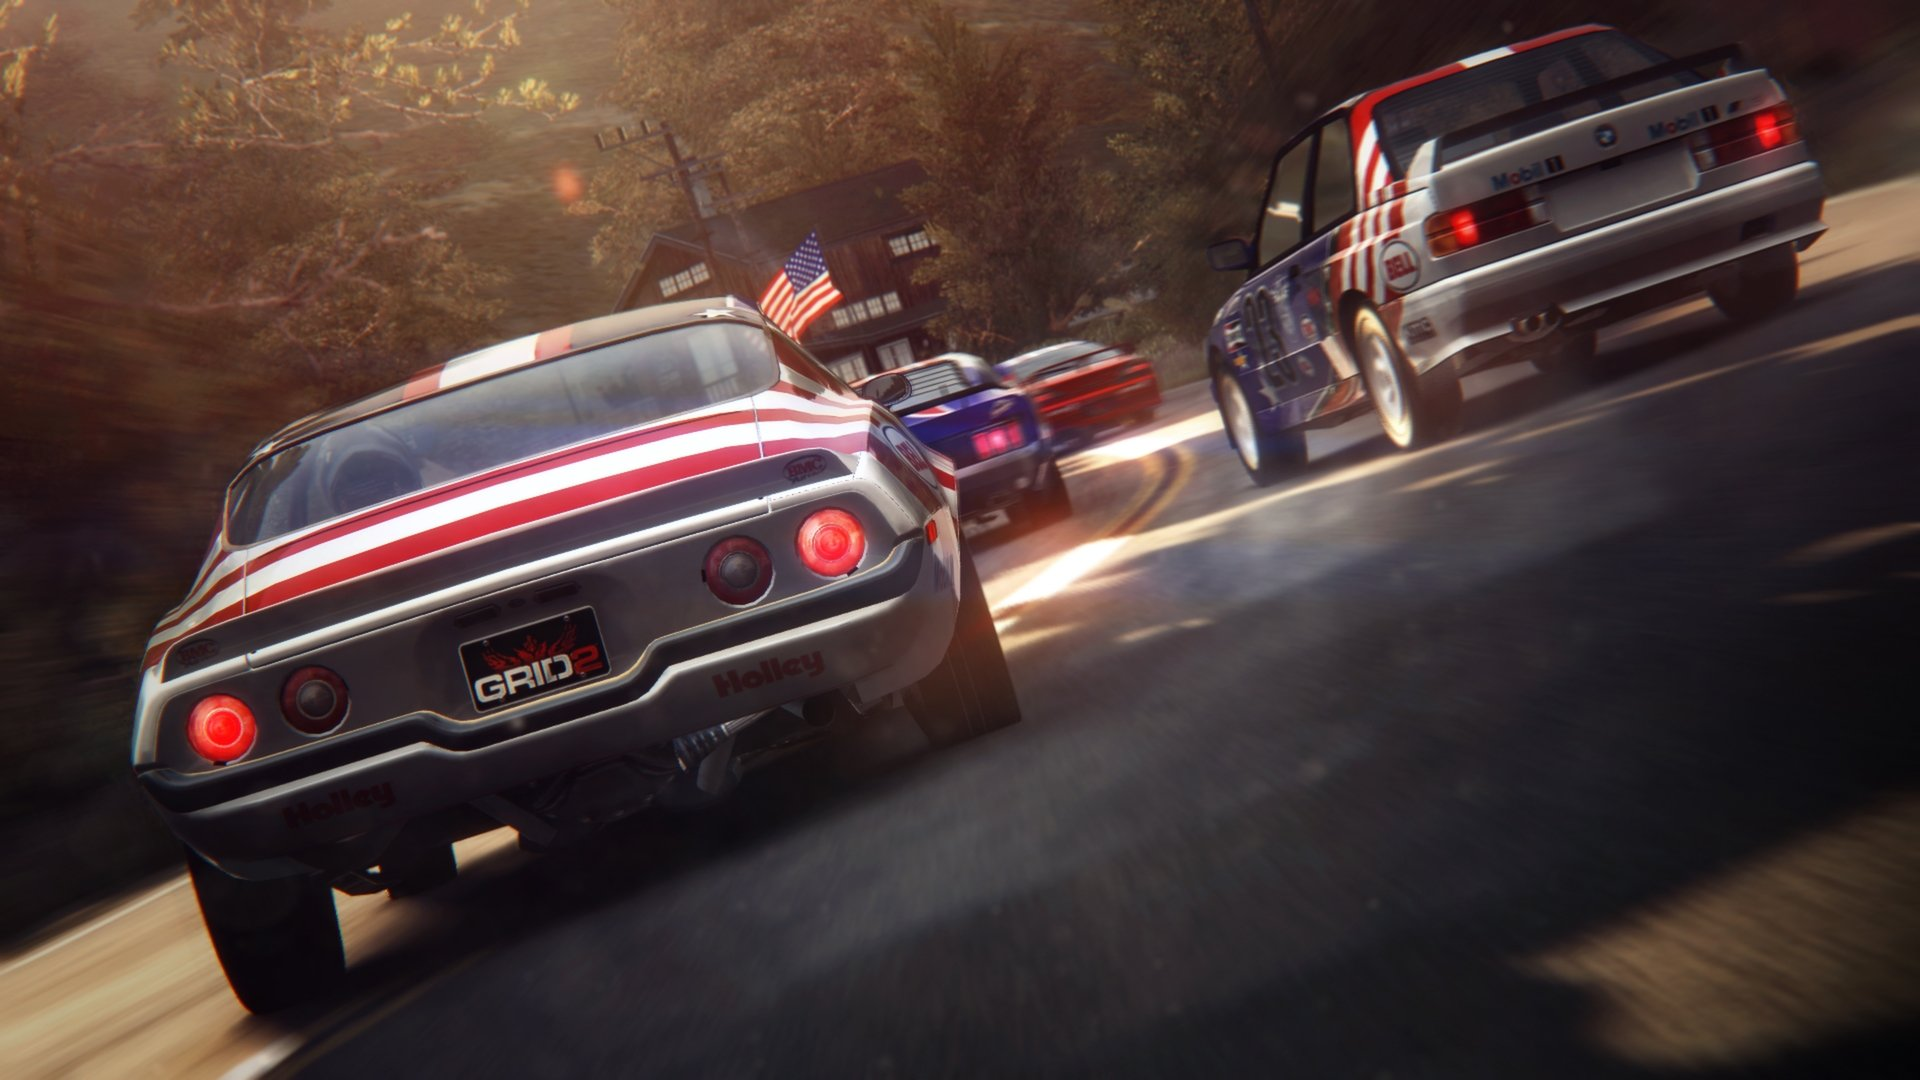 Photo of the finest GRID 2 racing game is available to you for free, for a limited time only